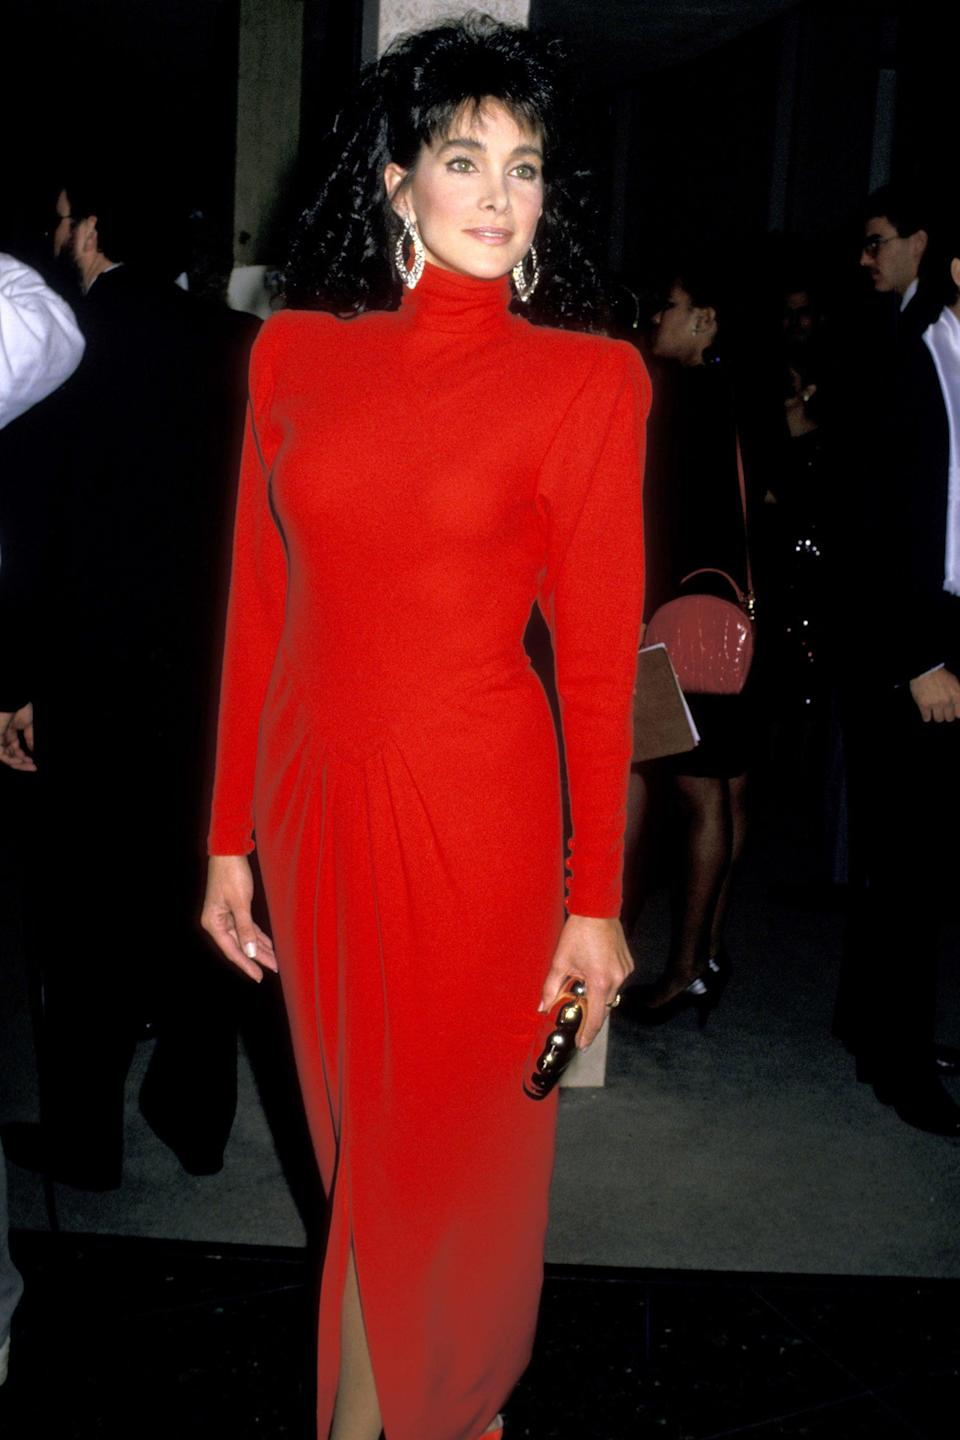 """<h2>1989</h2><br>The 1989 Golden Globes had some rather <em>interesting</em> fashion moments (it was the '80s after all). But this long-sleeved red gown on <em>Hotel</em> star Connie Selleca is just as chic now as it was back then. <br><br><em>Connie Sellecca in a red gown.</em><span class=""""copyright"""">Photo: Jim Smeal/Ron Galella Collection/Getty Images.</span>"""